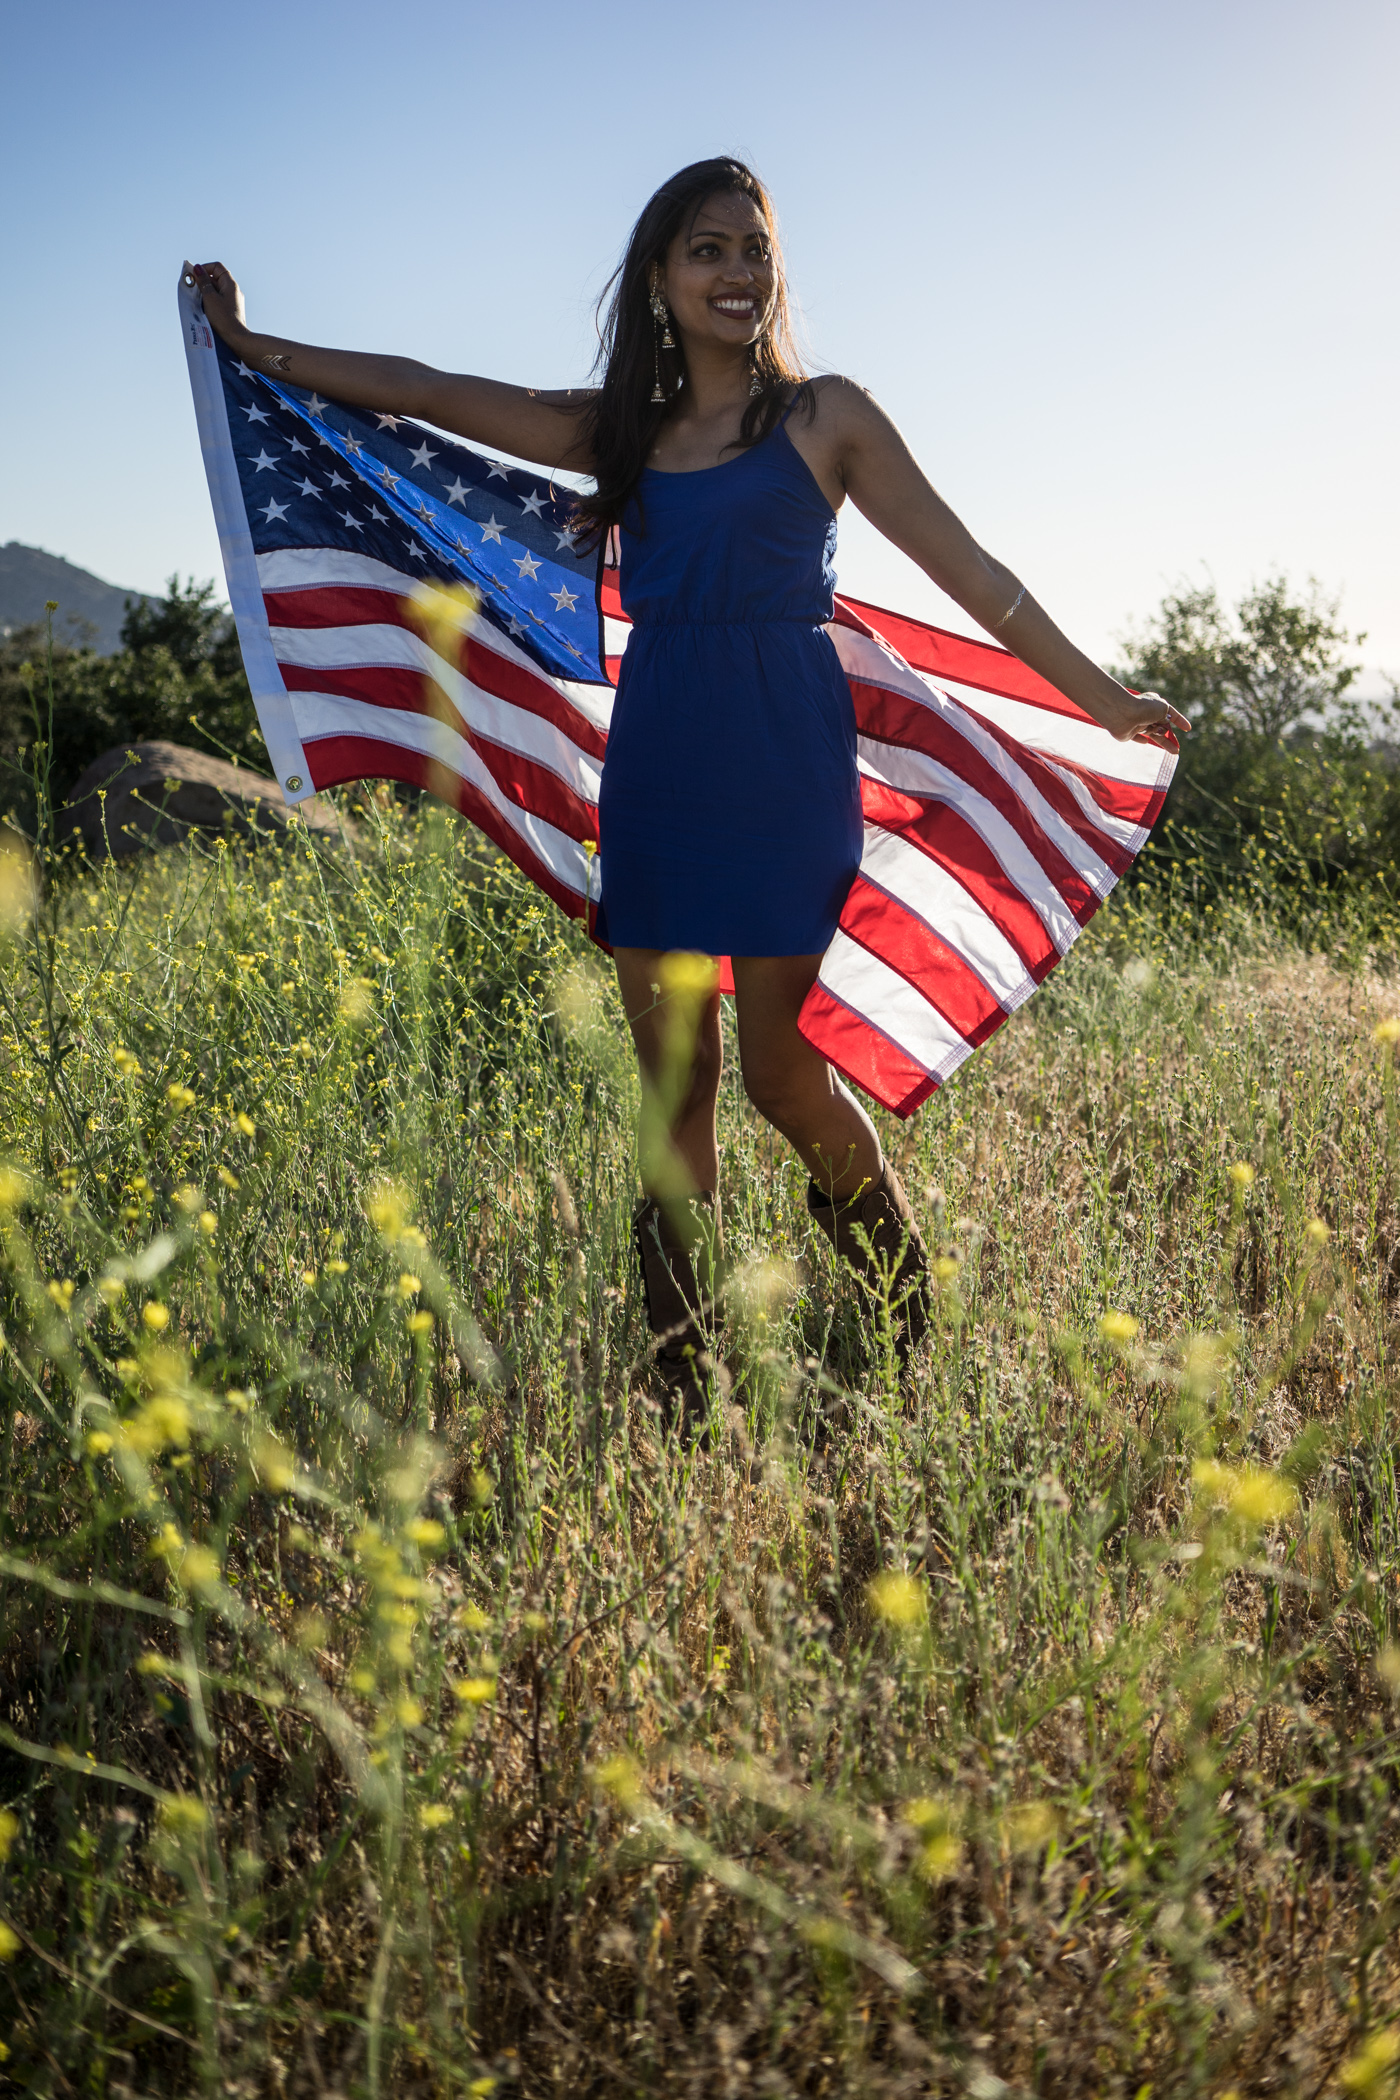 American woman with waving flag portrait in grassy mountain landscape at sunset